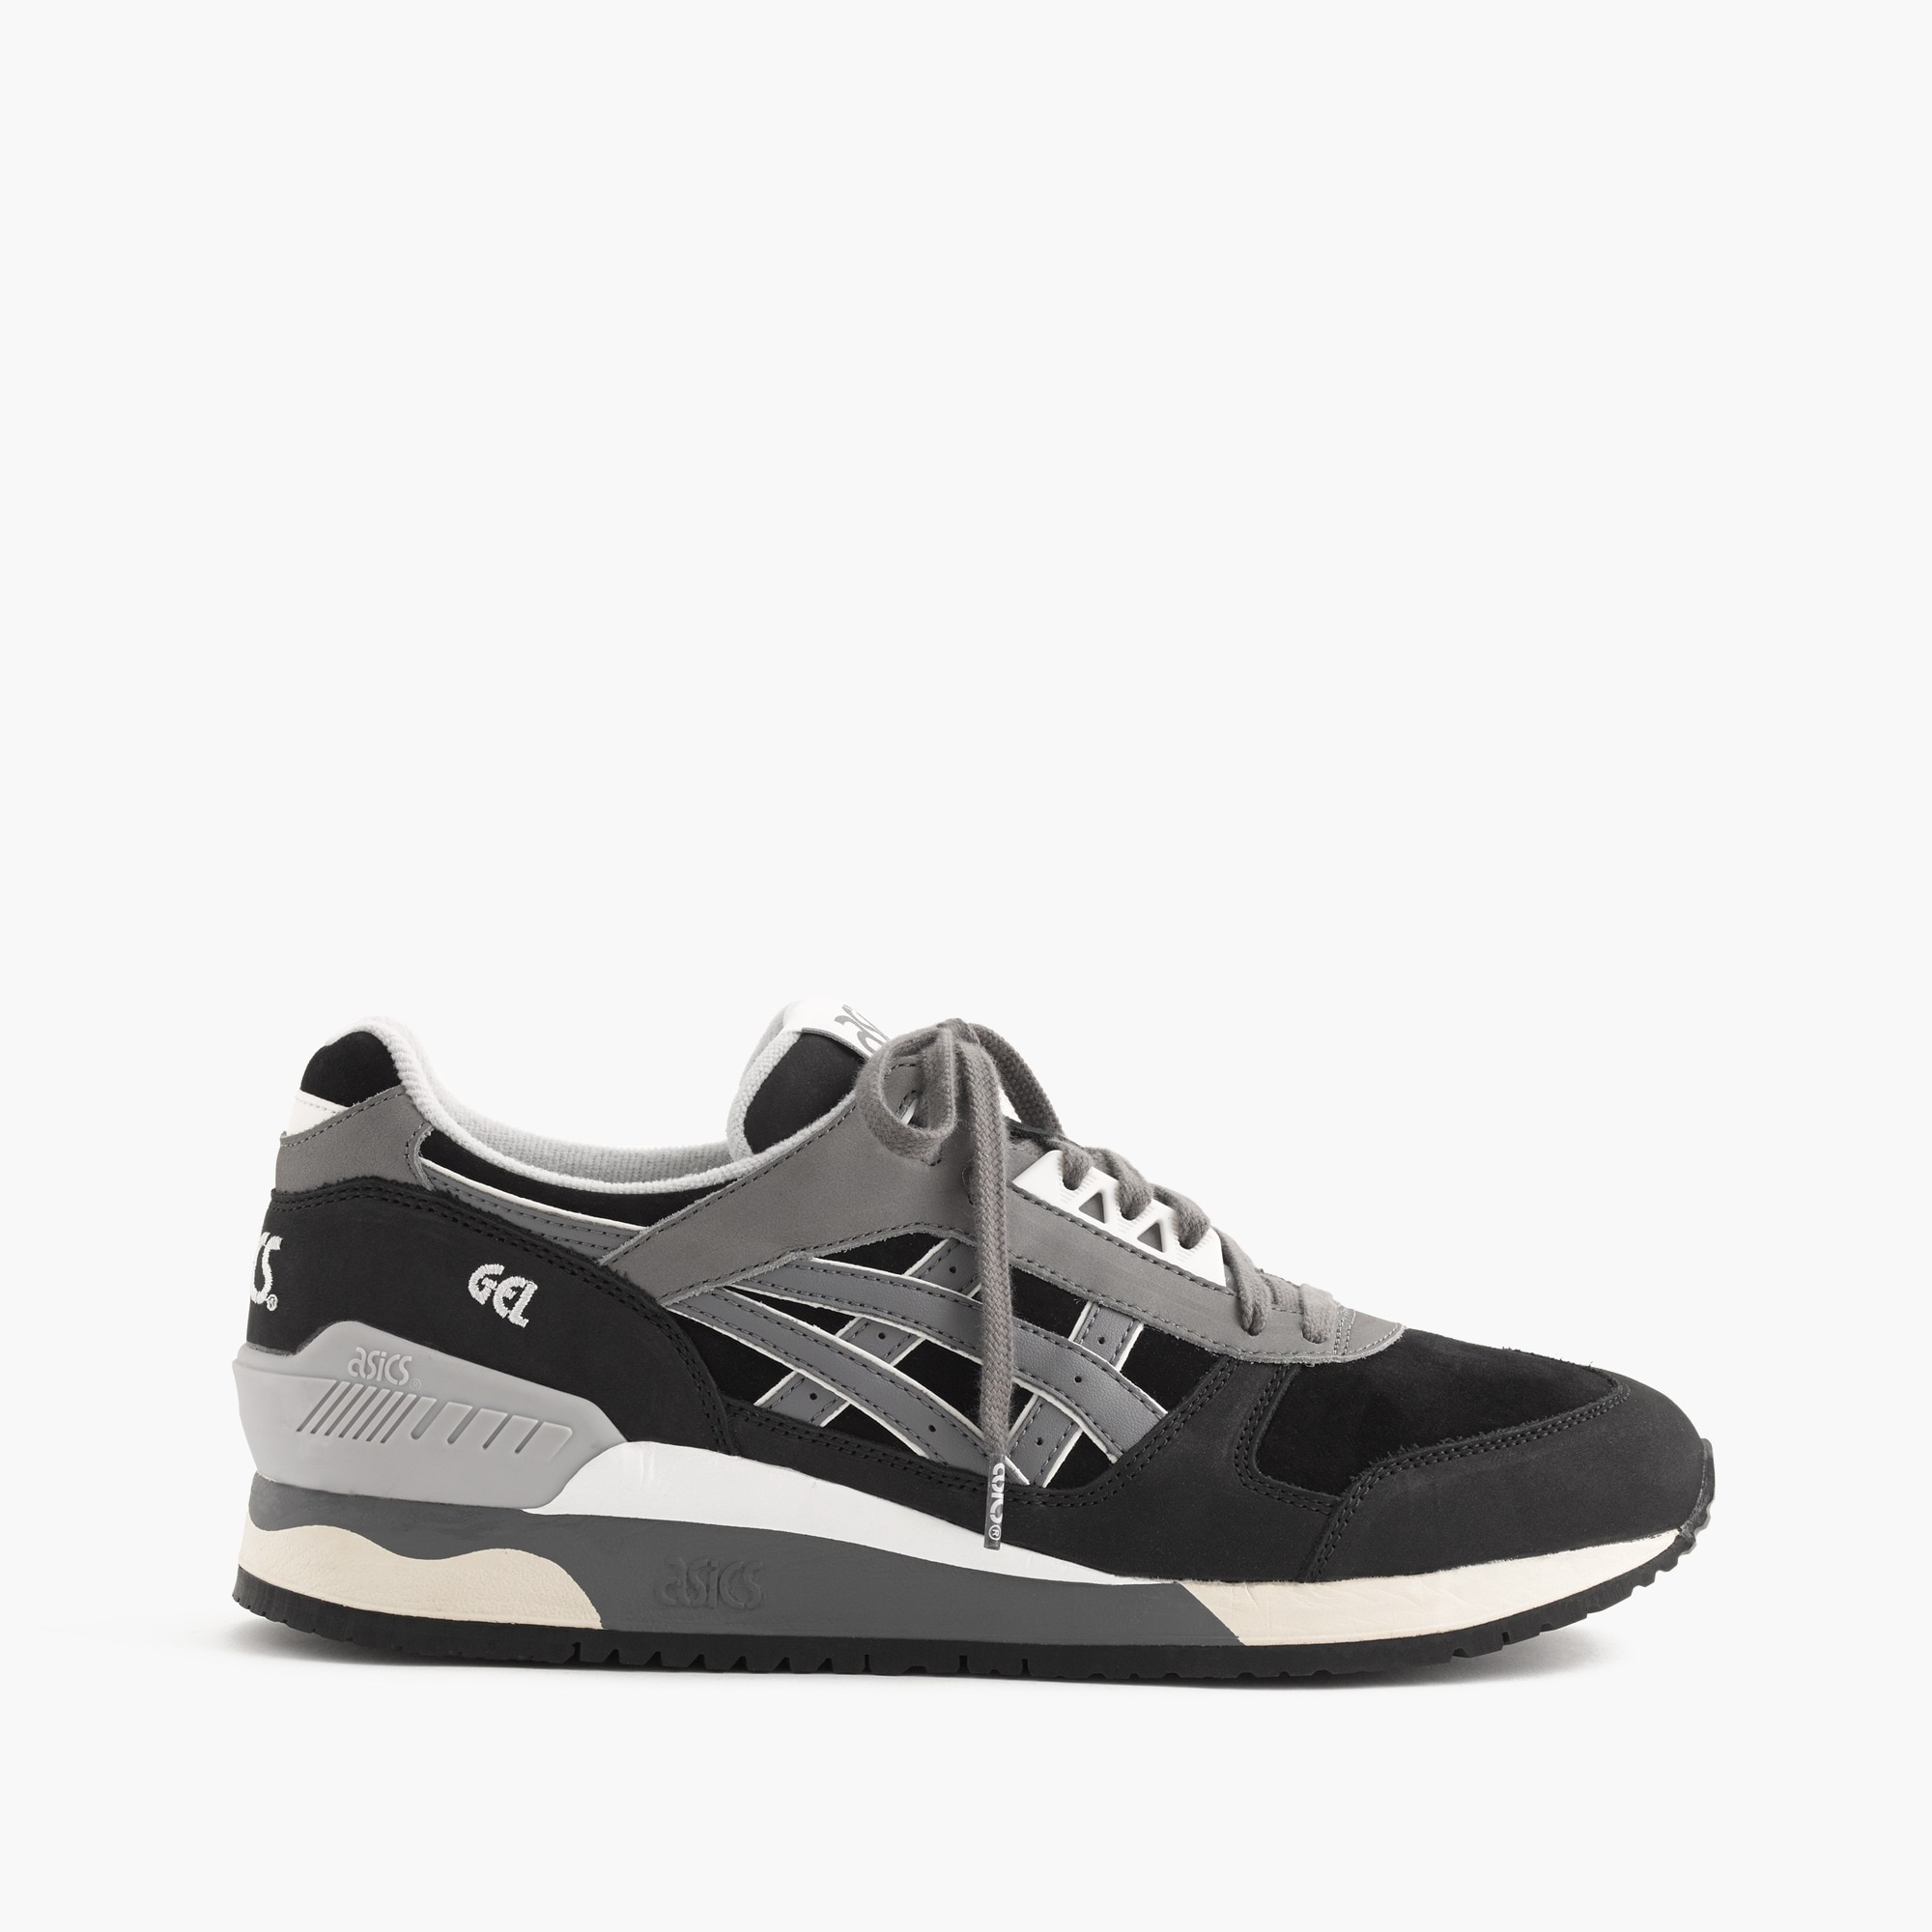 asics for j.crew gel-respector sneakers : men's sneakers